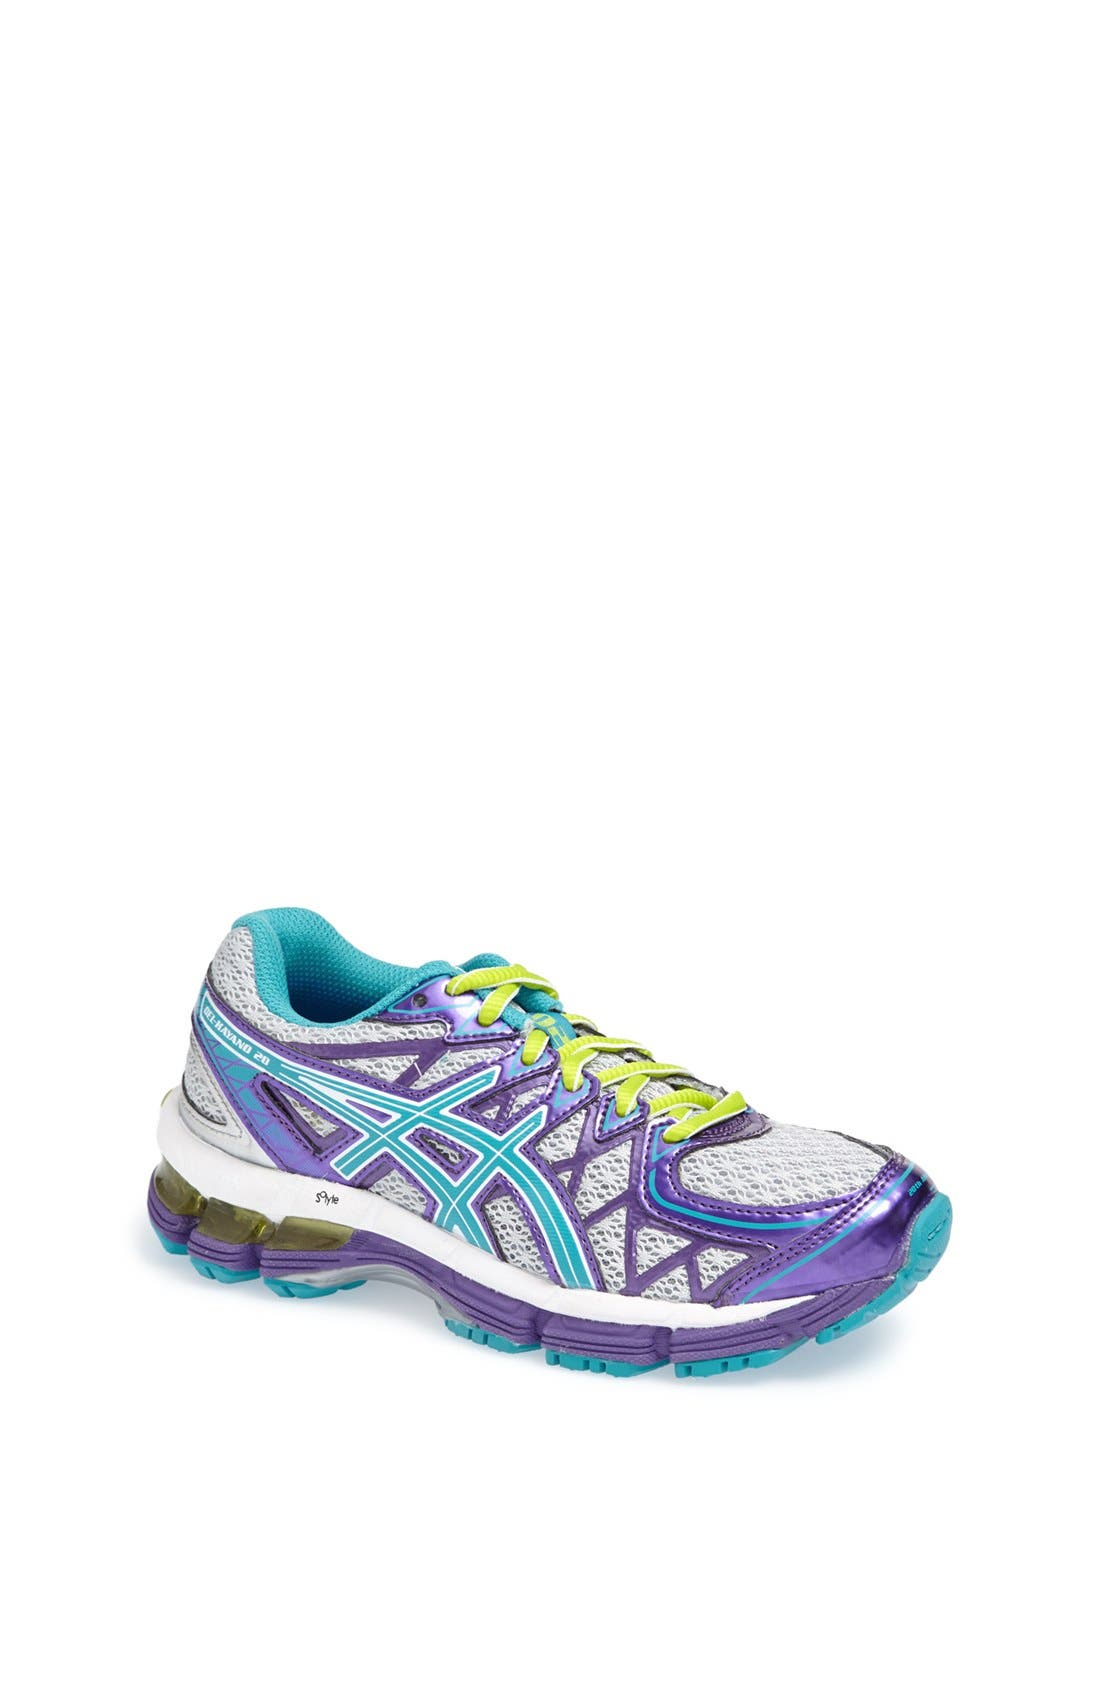 Alternate Image 1 Selected - ASICS® 'Gel-Kayano® 20' Running Shoe (Little Kid & Big Kid)